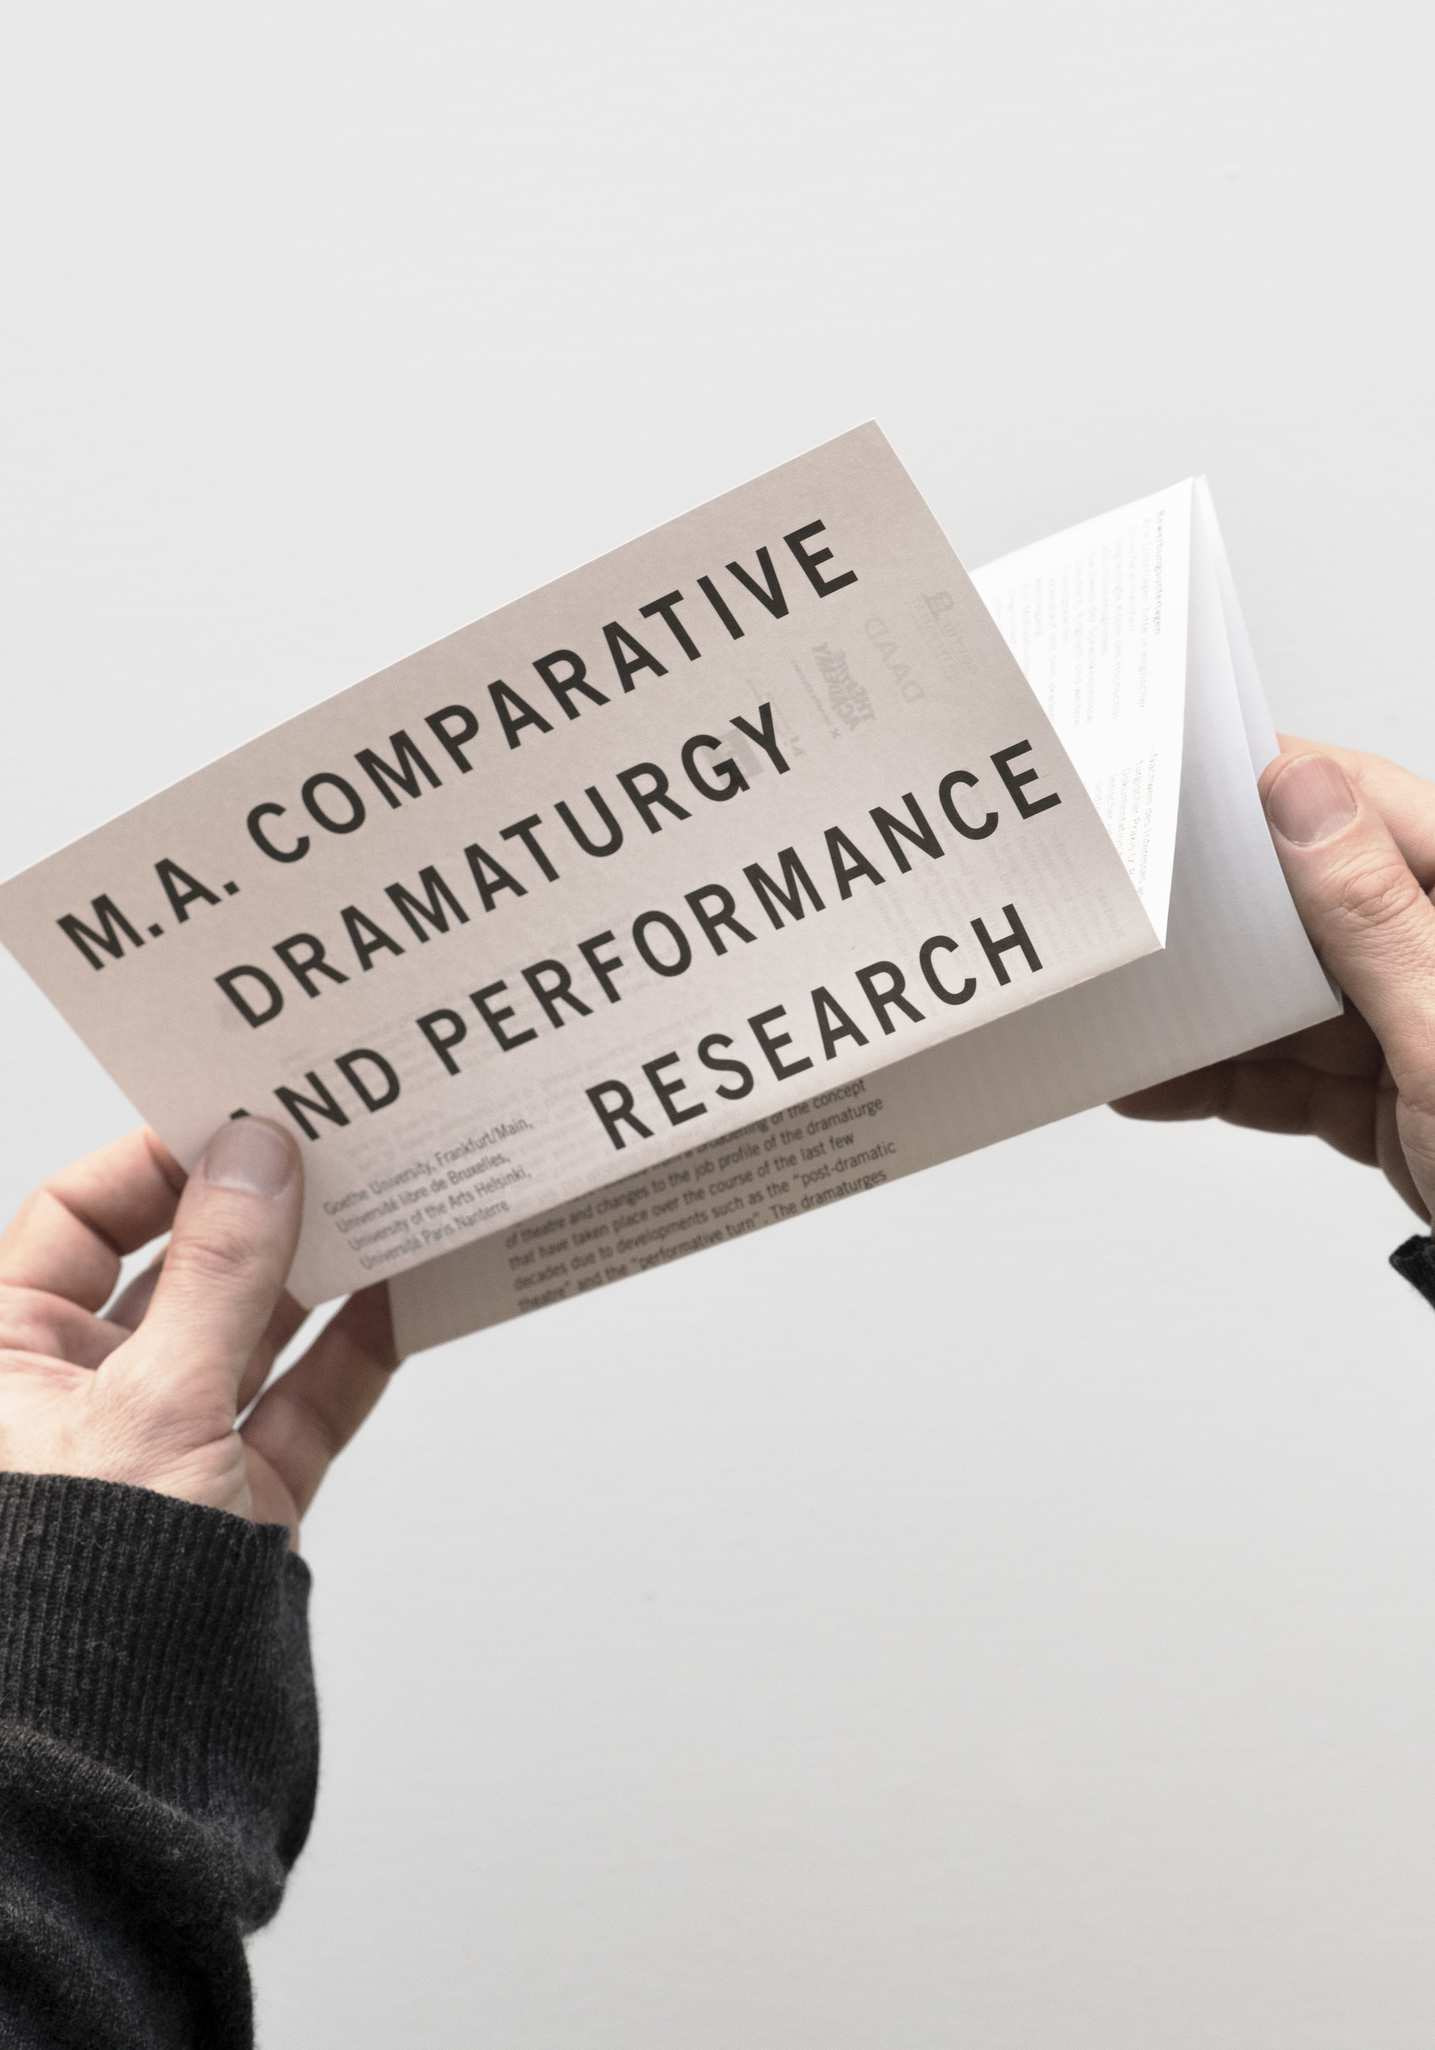 ma-comparative-dramaturgy-and-performance-research-flyer-8-1435x2050px